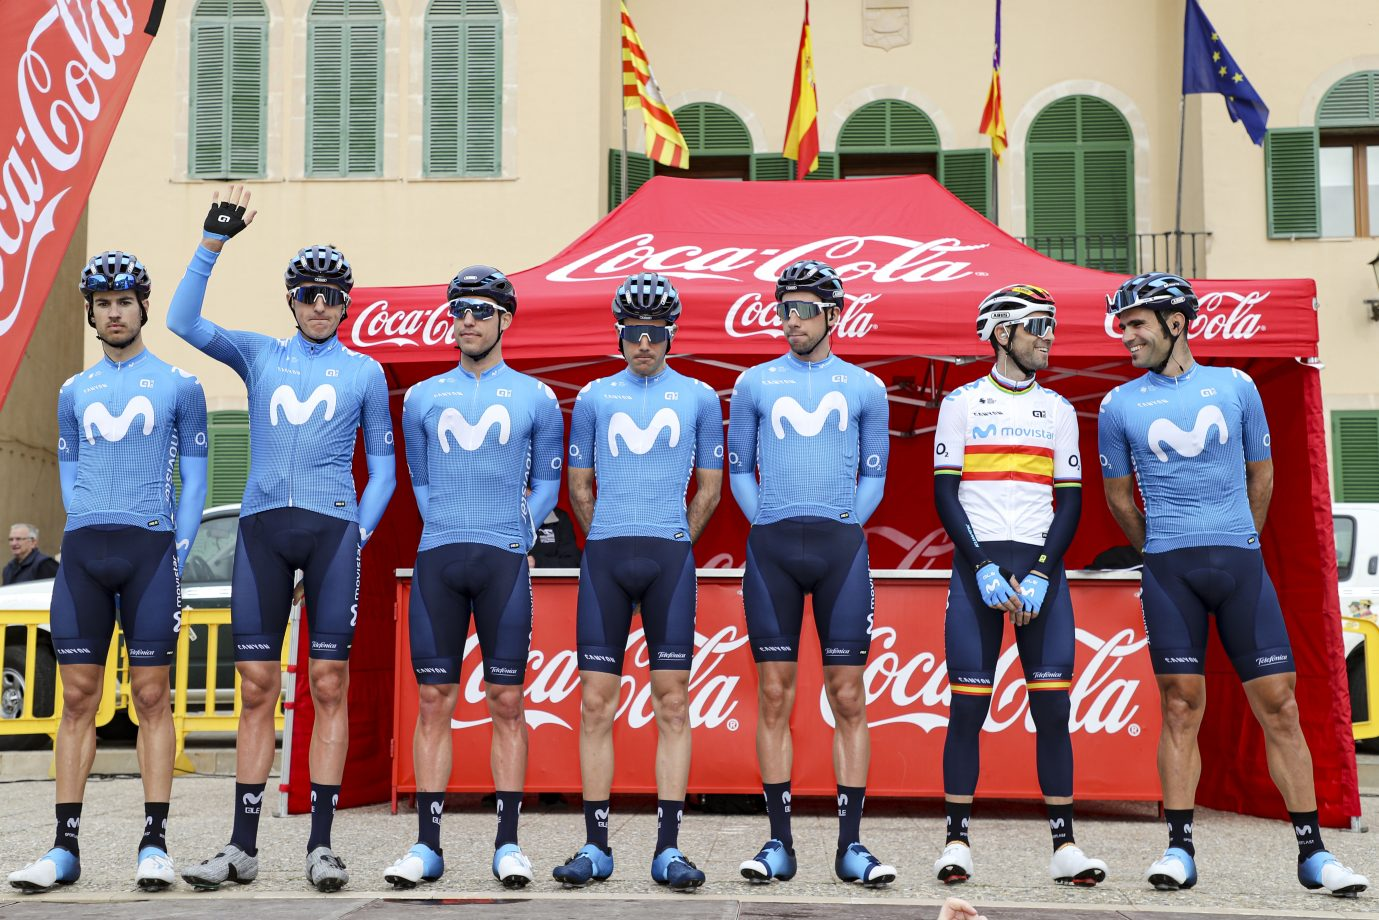 Imagen de la noticia 'Full-speed debut for Movistar Team on European soil'